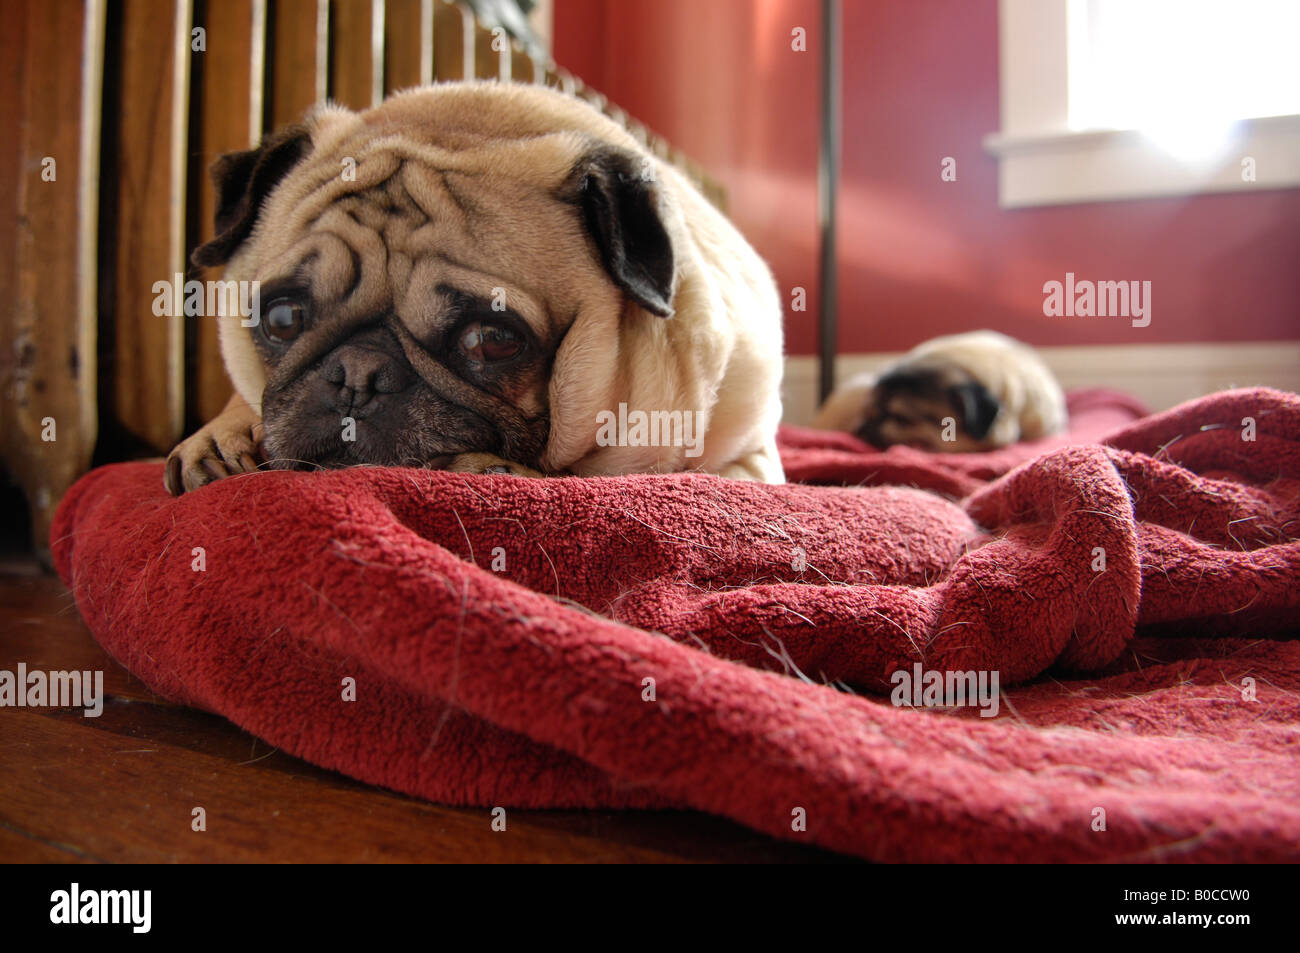 Two sleeping pug dogs on red blankets - Stock Image